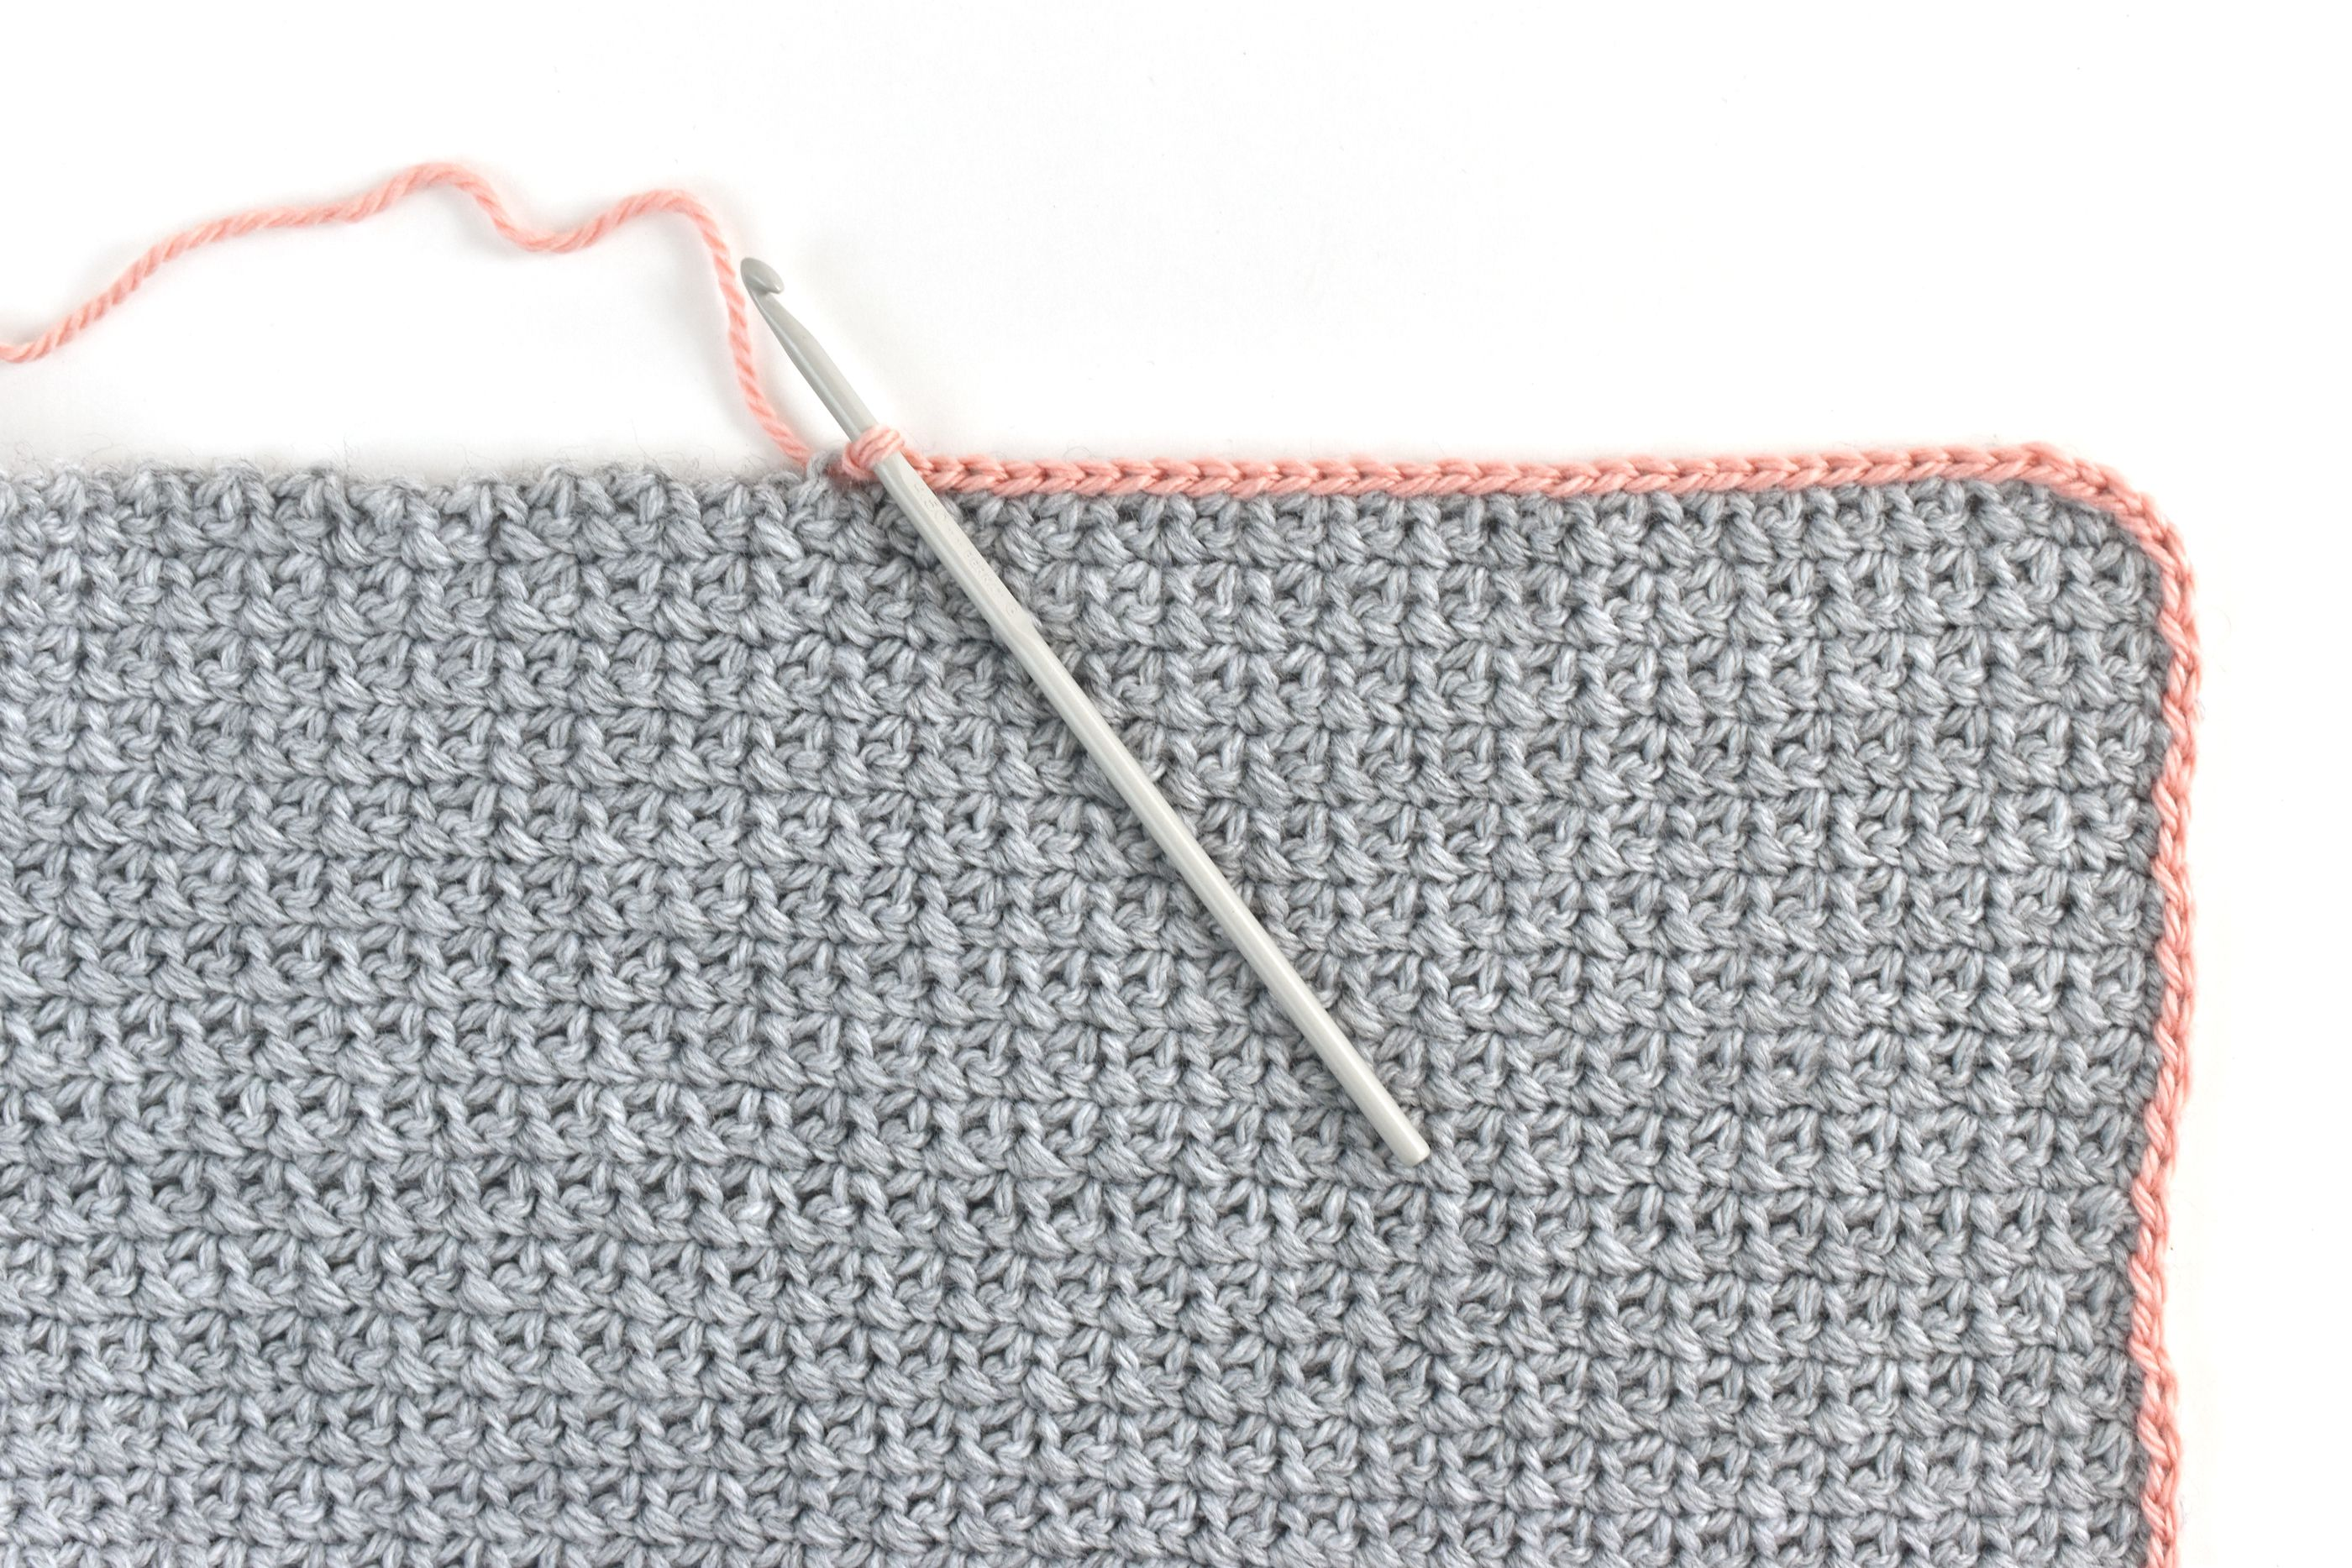 How to Work the Slip Stitch in Crochet